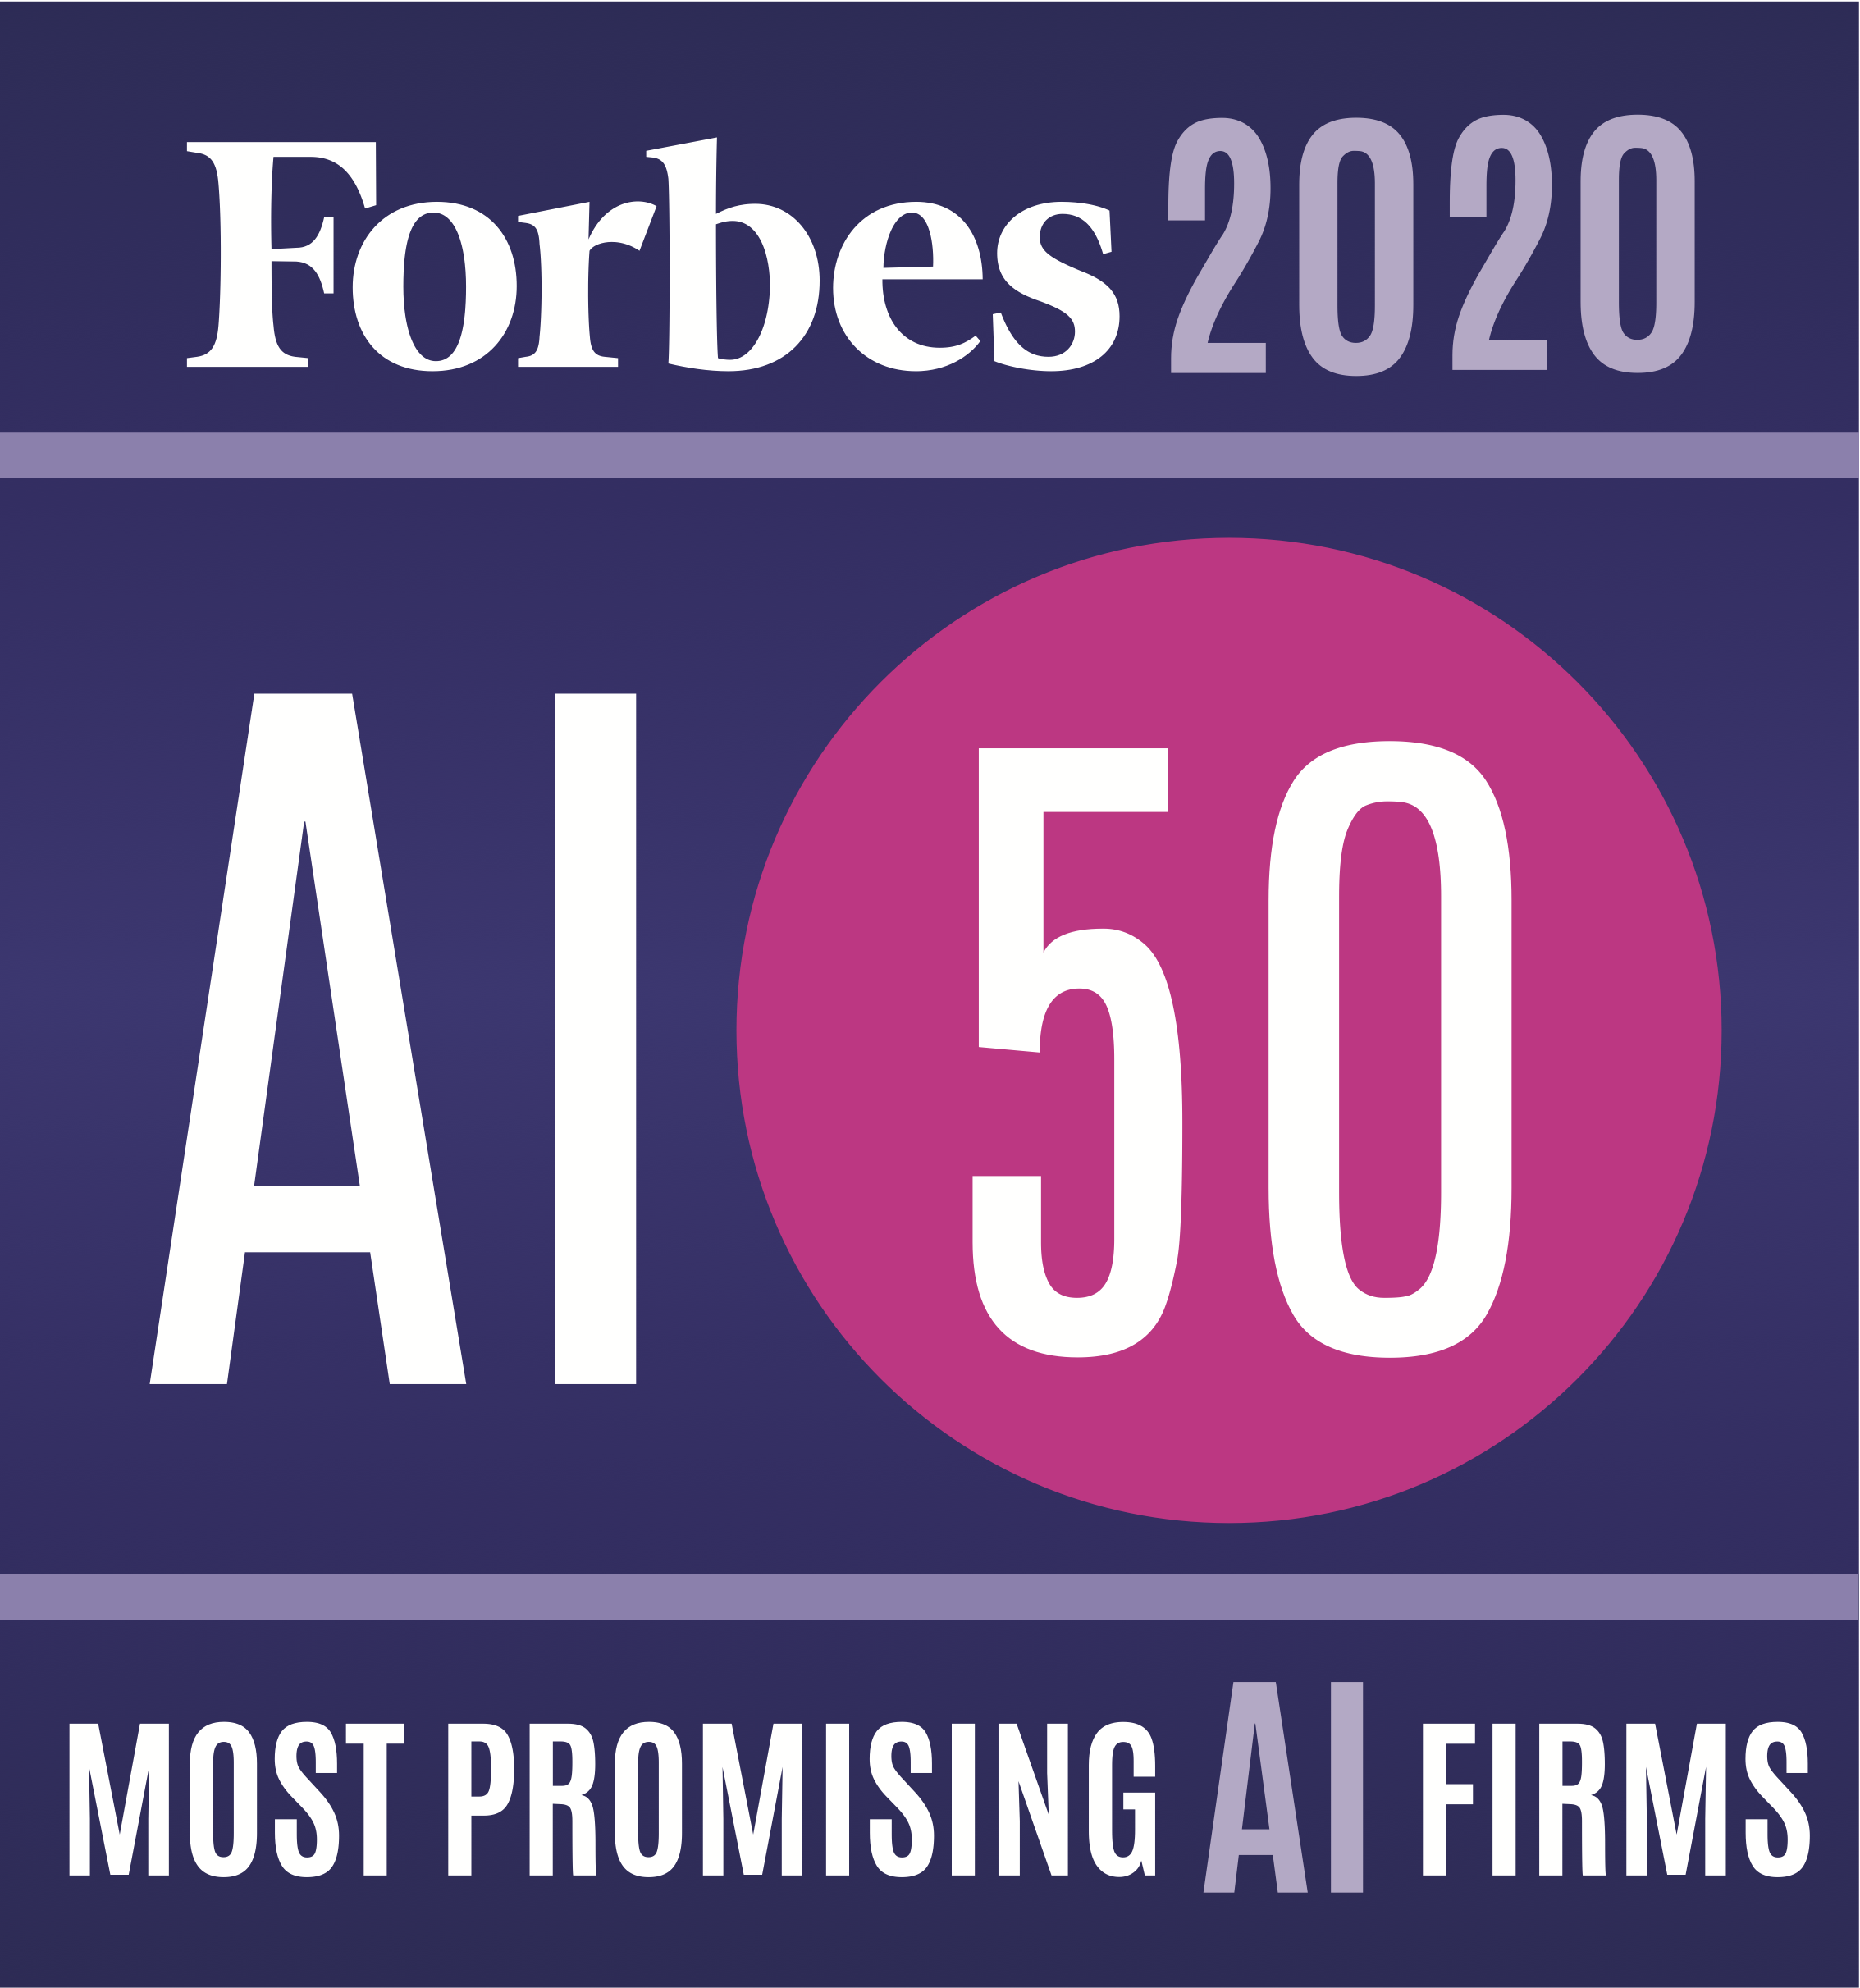 Fiddler is one of Forbes' AI 50: America's Most Promising Artificial Intelligence Companies in 2020